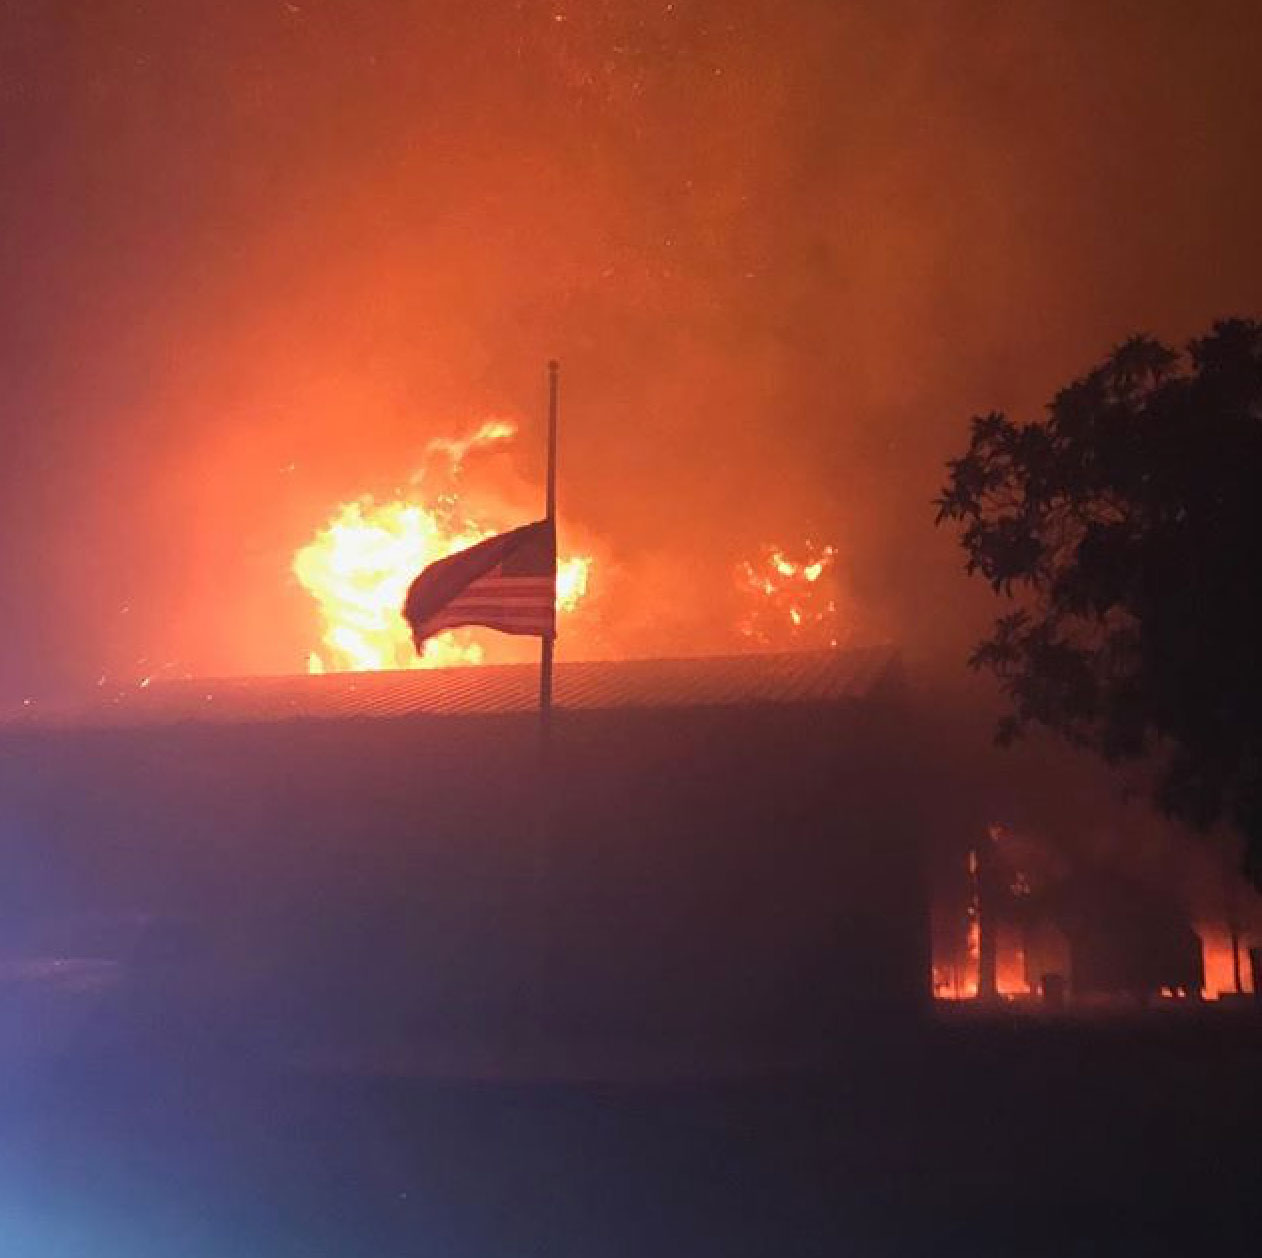 <div class='meta'><div class='origin-logo' data-origin='none'></div><span class='caption-text' data-credit='local55oakland/Instagram'>An American flag flies as the Tubbs fire burns behind it.</span></div>